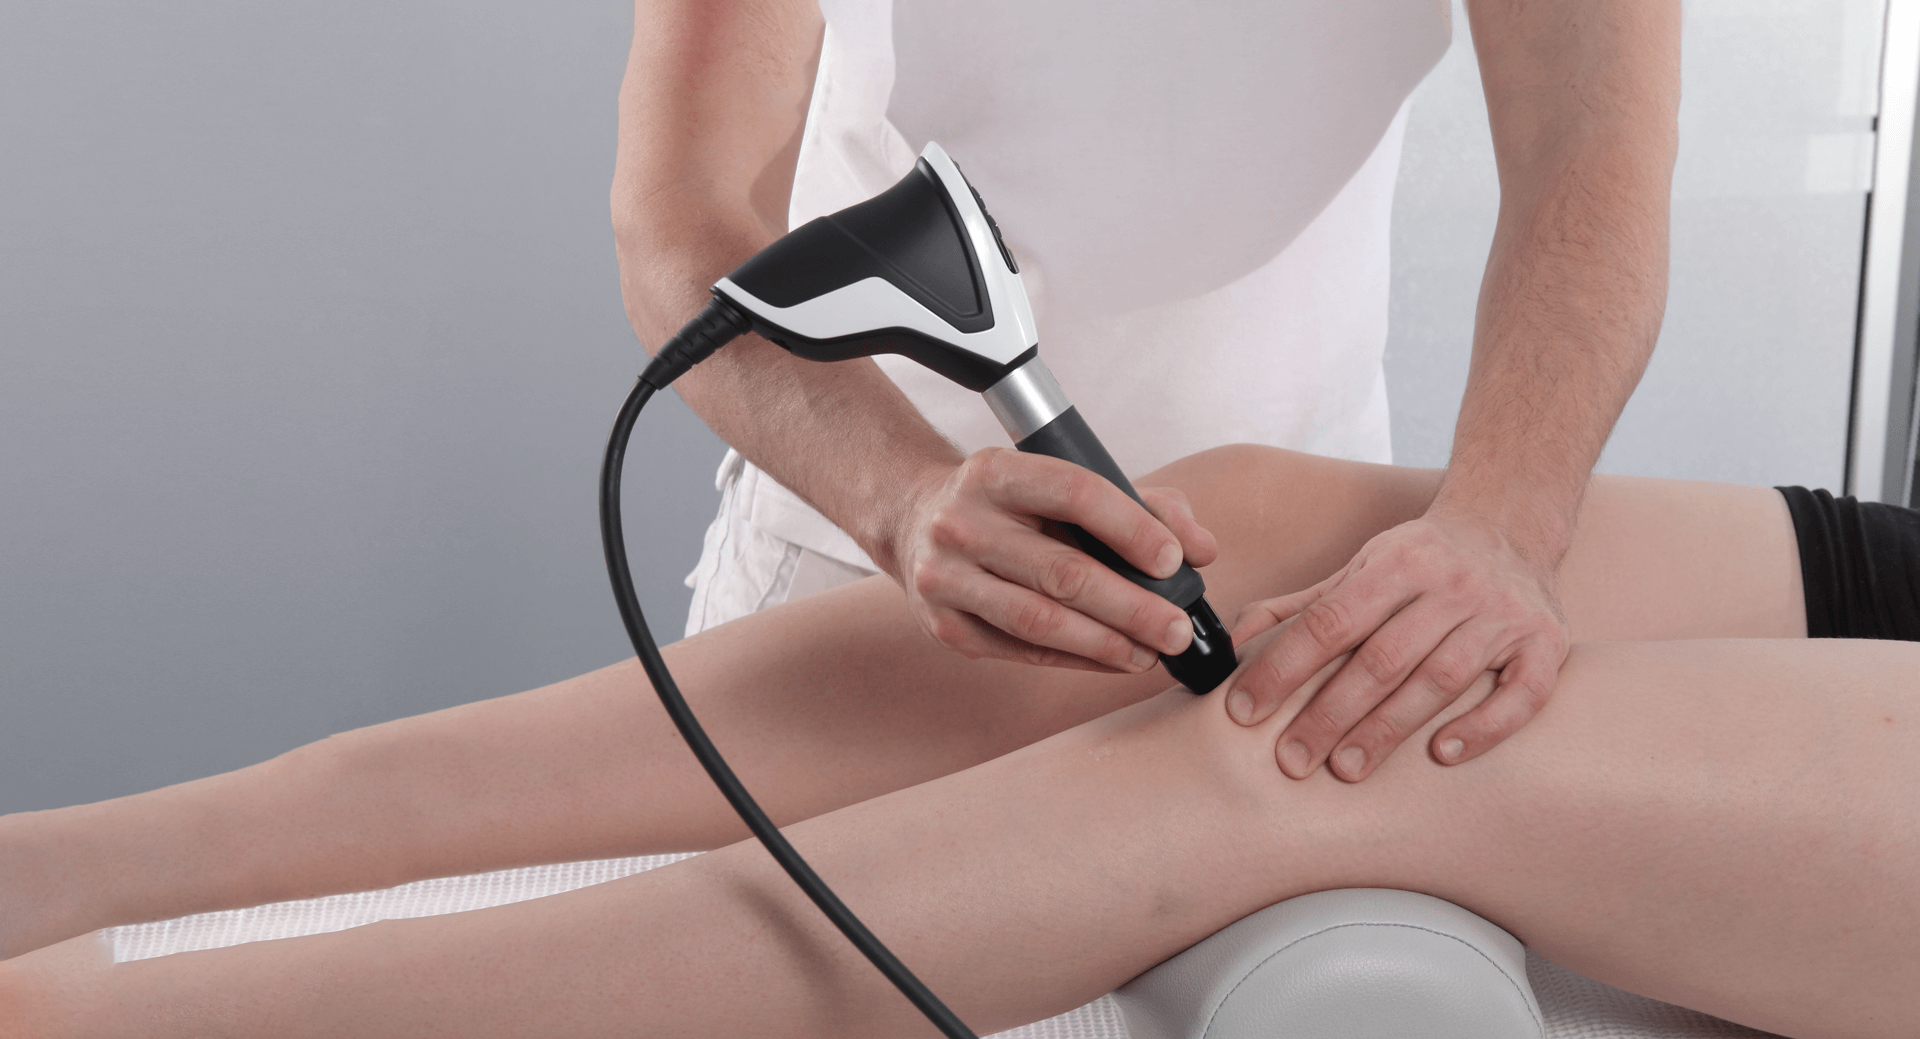 An exception to a treatment with the Sepia handpiece by Storz Medical